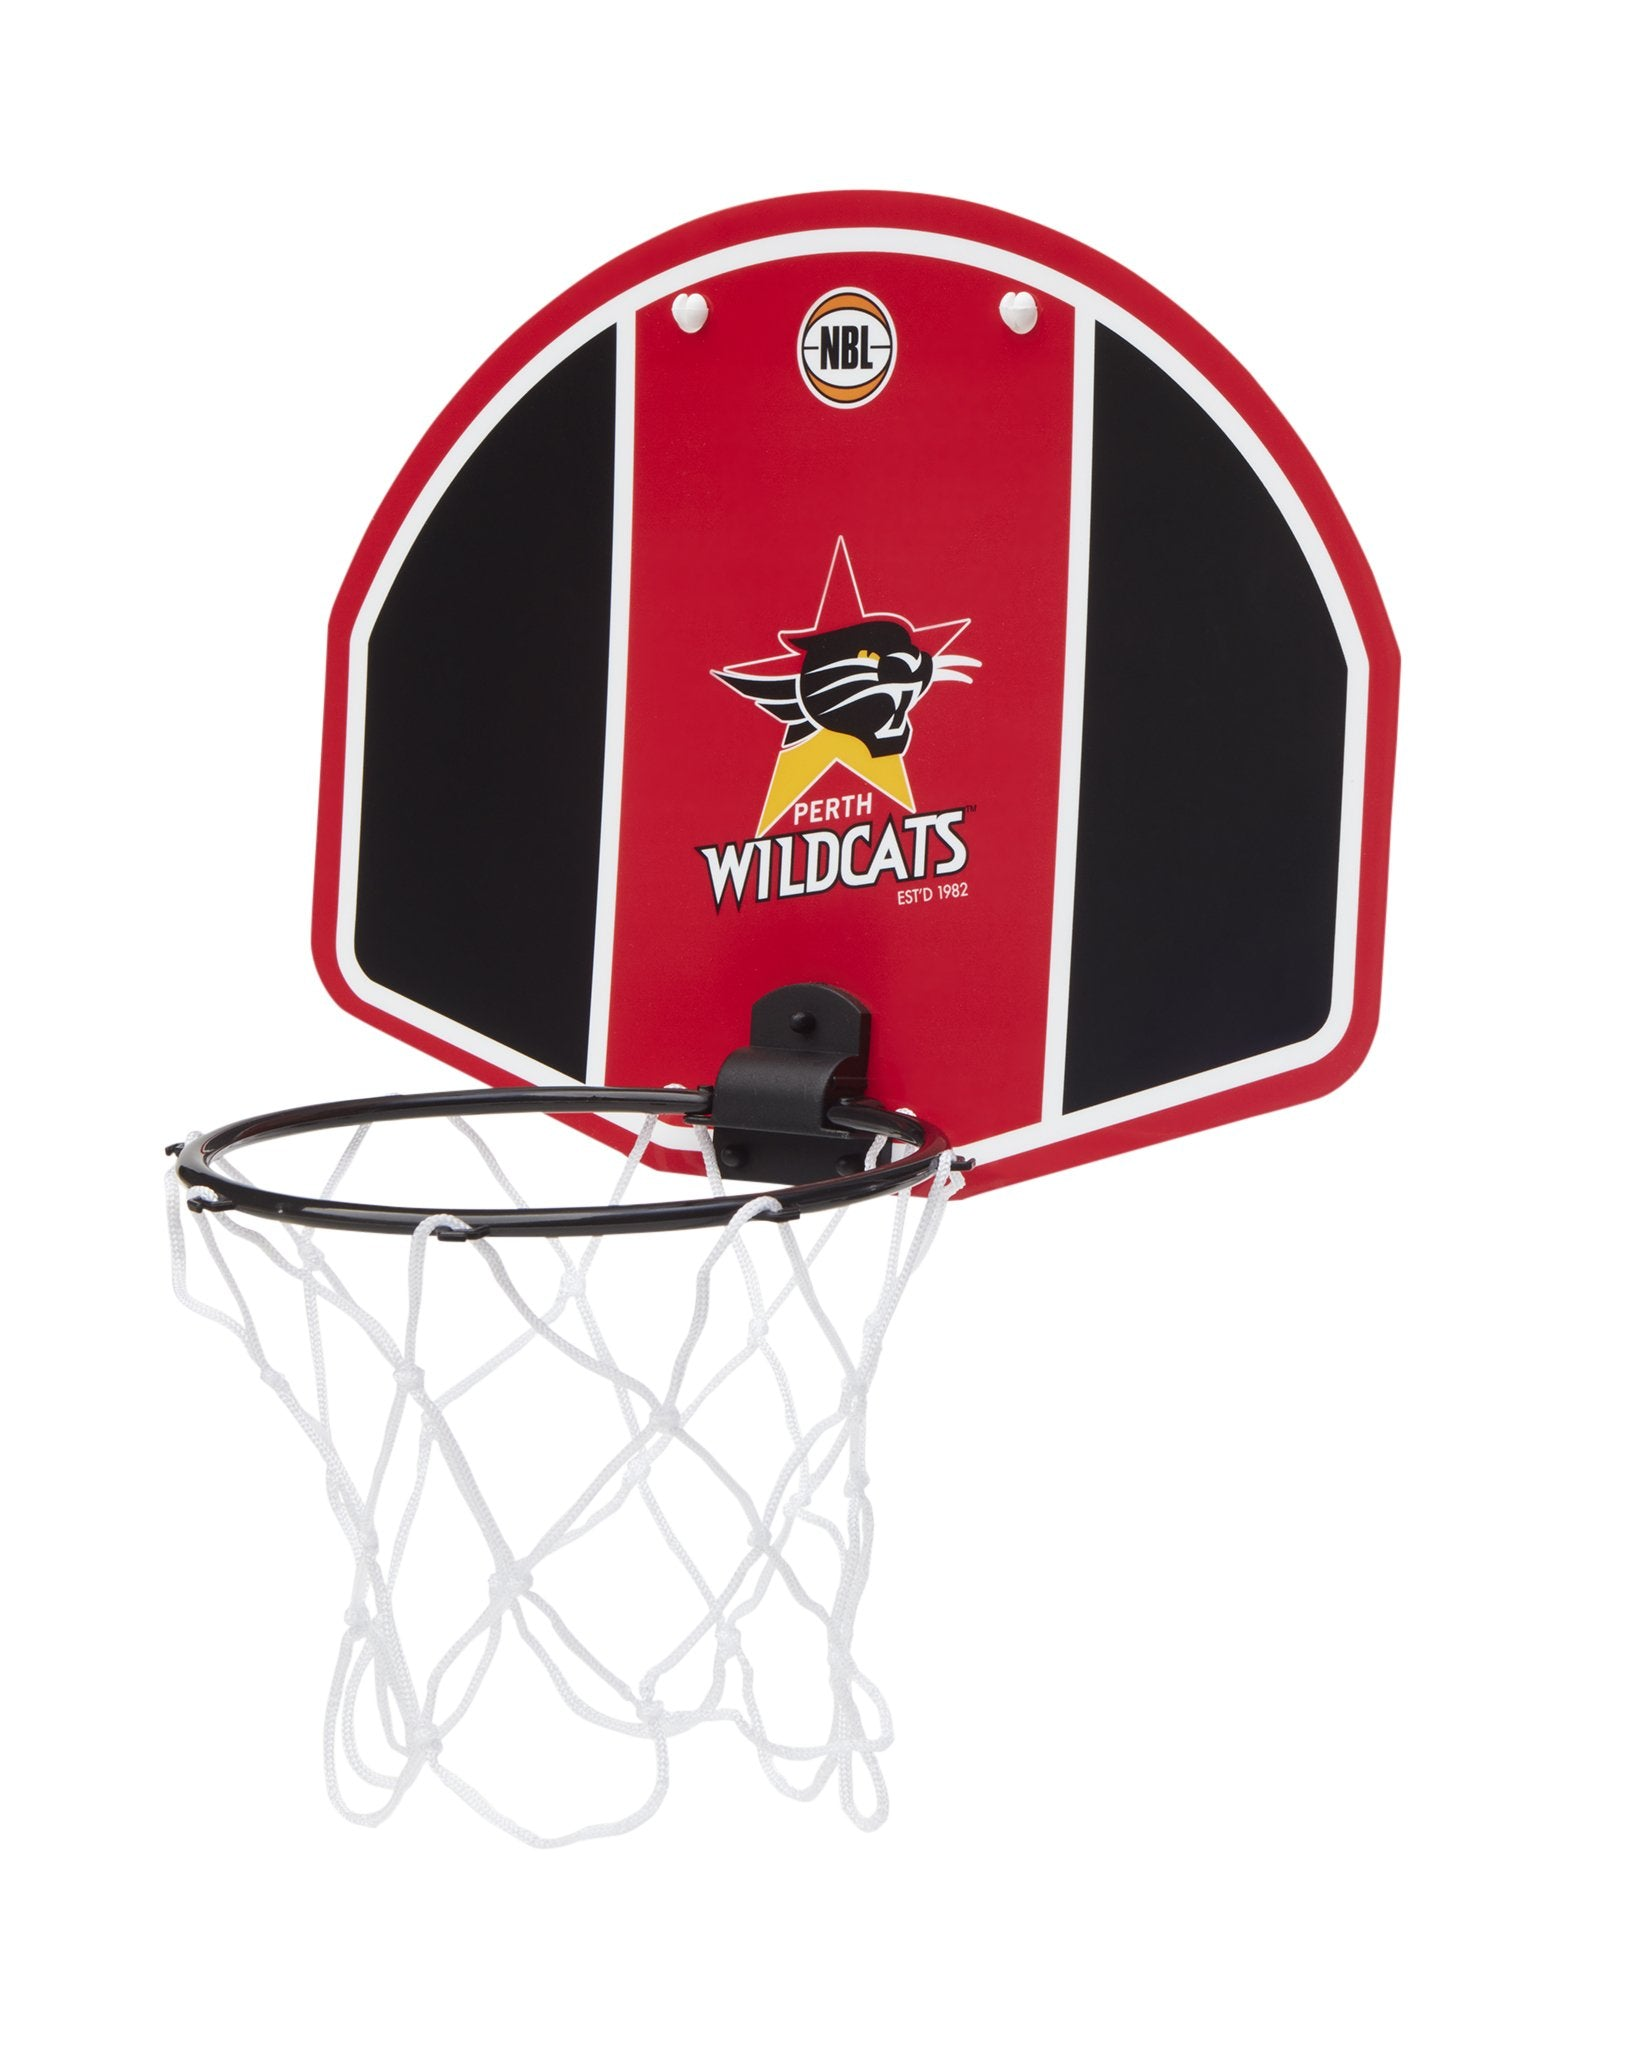 Perth Wildcats 19/20 Dunks & Chill Bundle